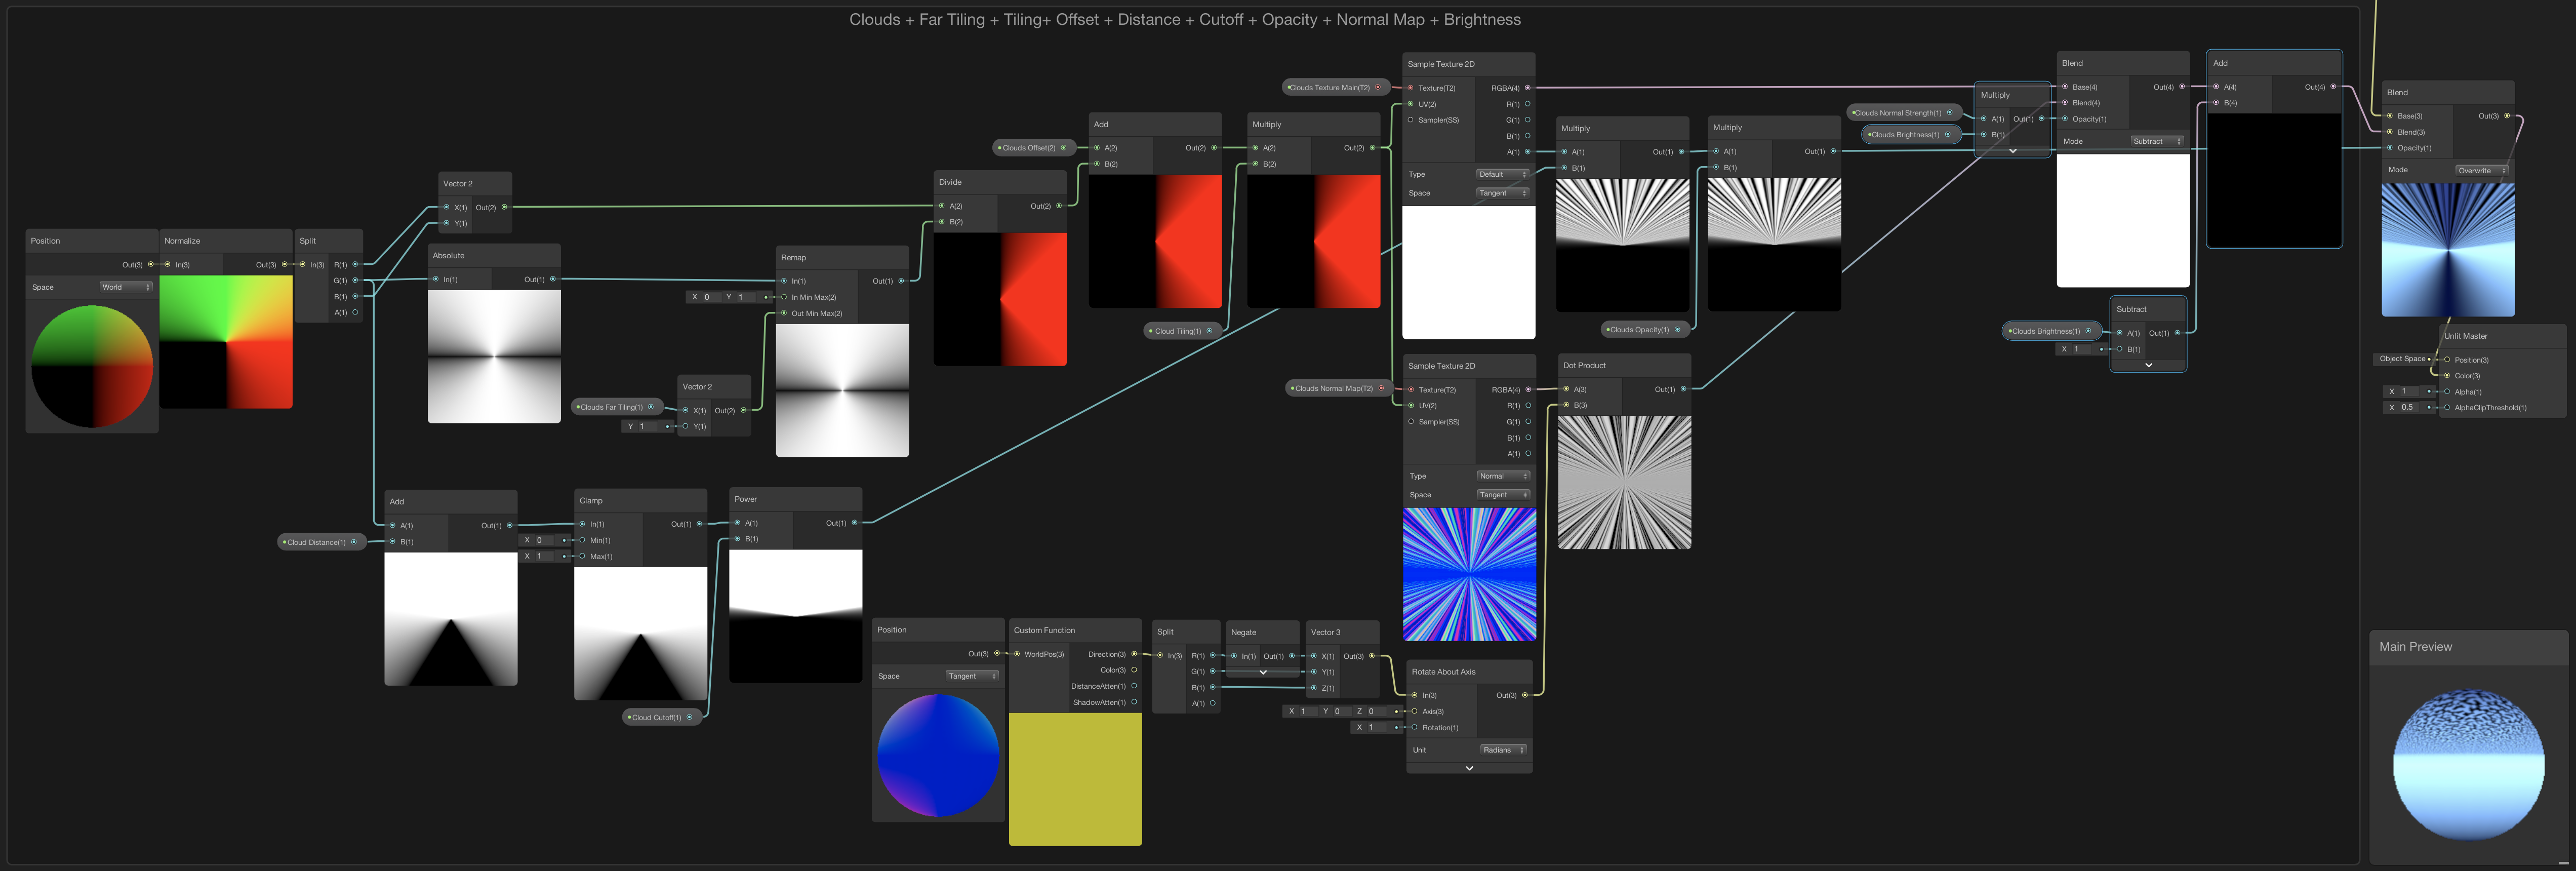 Image displaying the shader graph node setup to add brightness to the clouds layer.